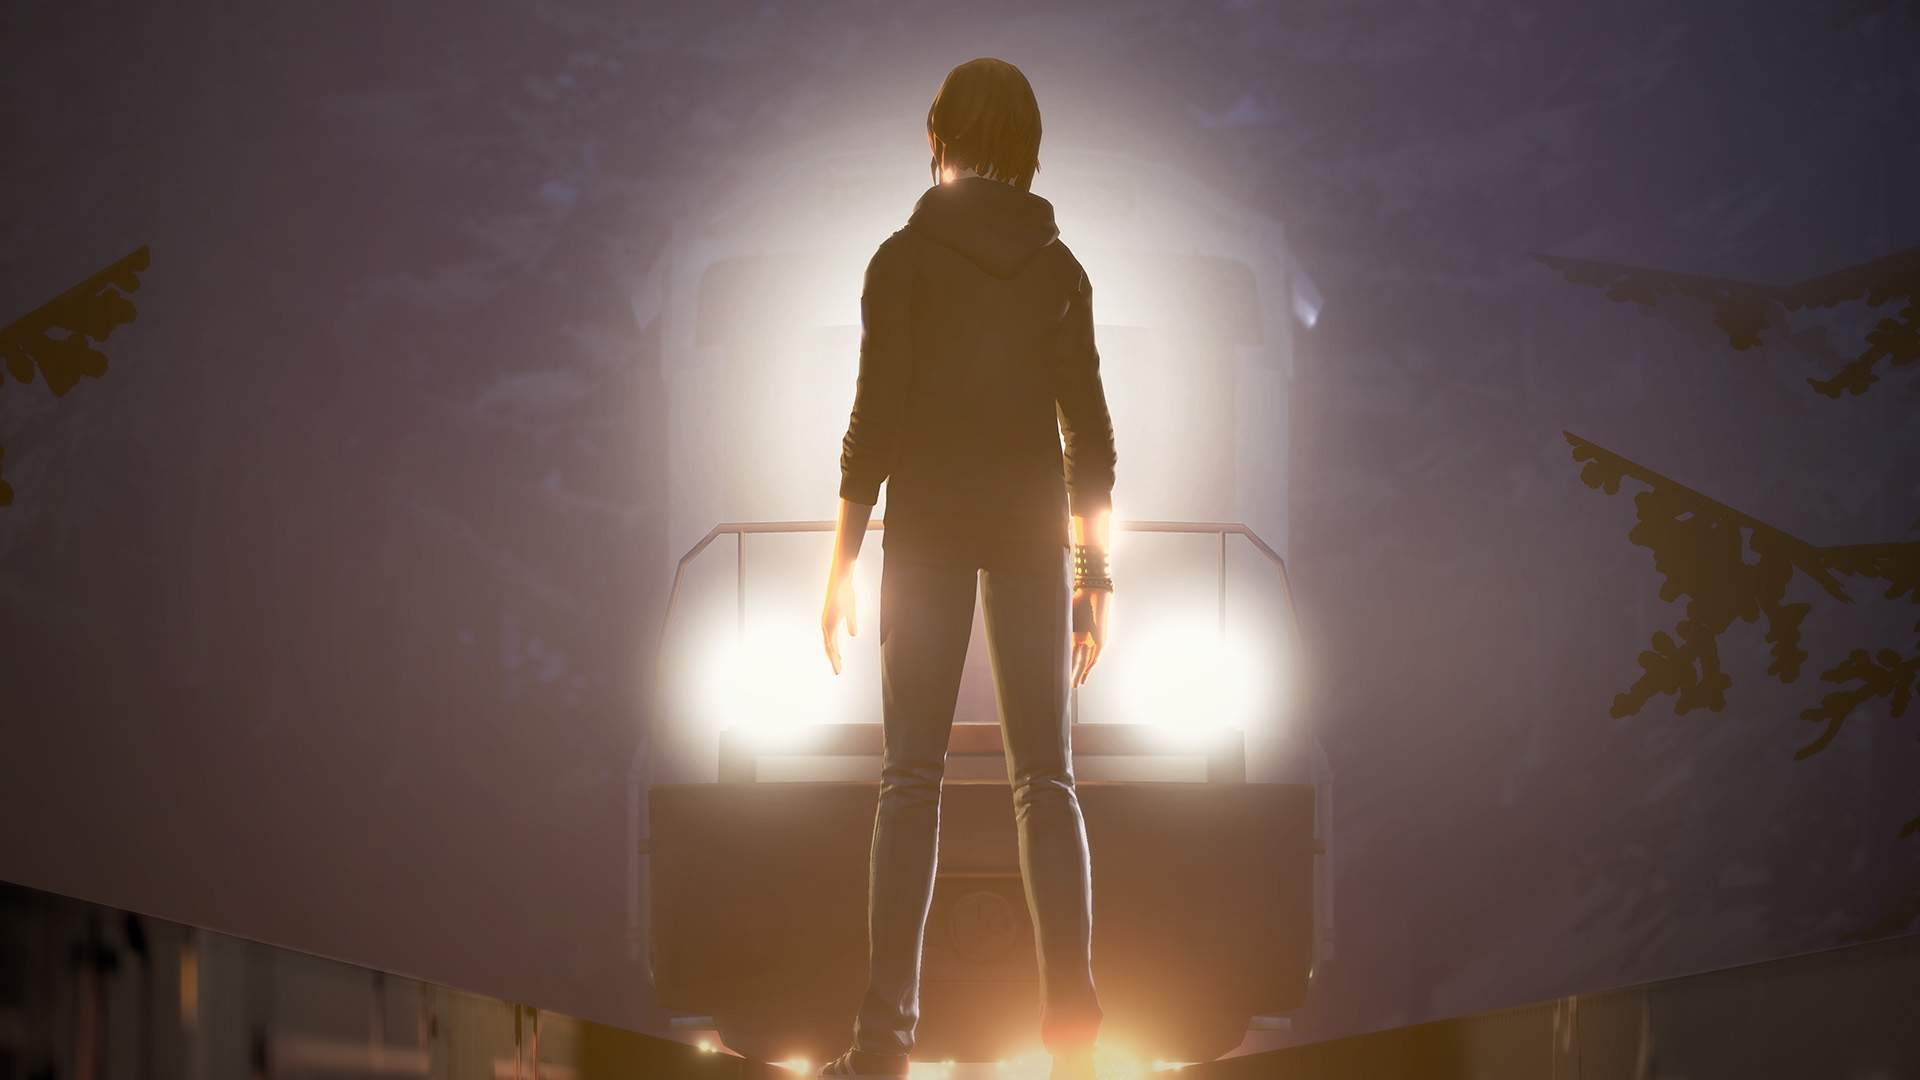 Lit by the headlamps of an oncoming freight train, Chloe Price stands defiant in the middle of the tracks.